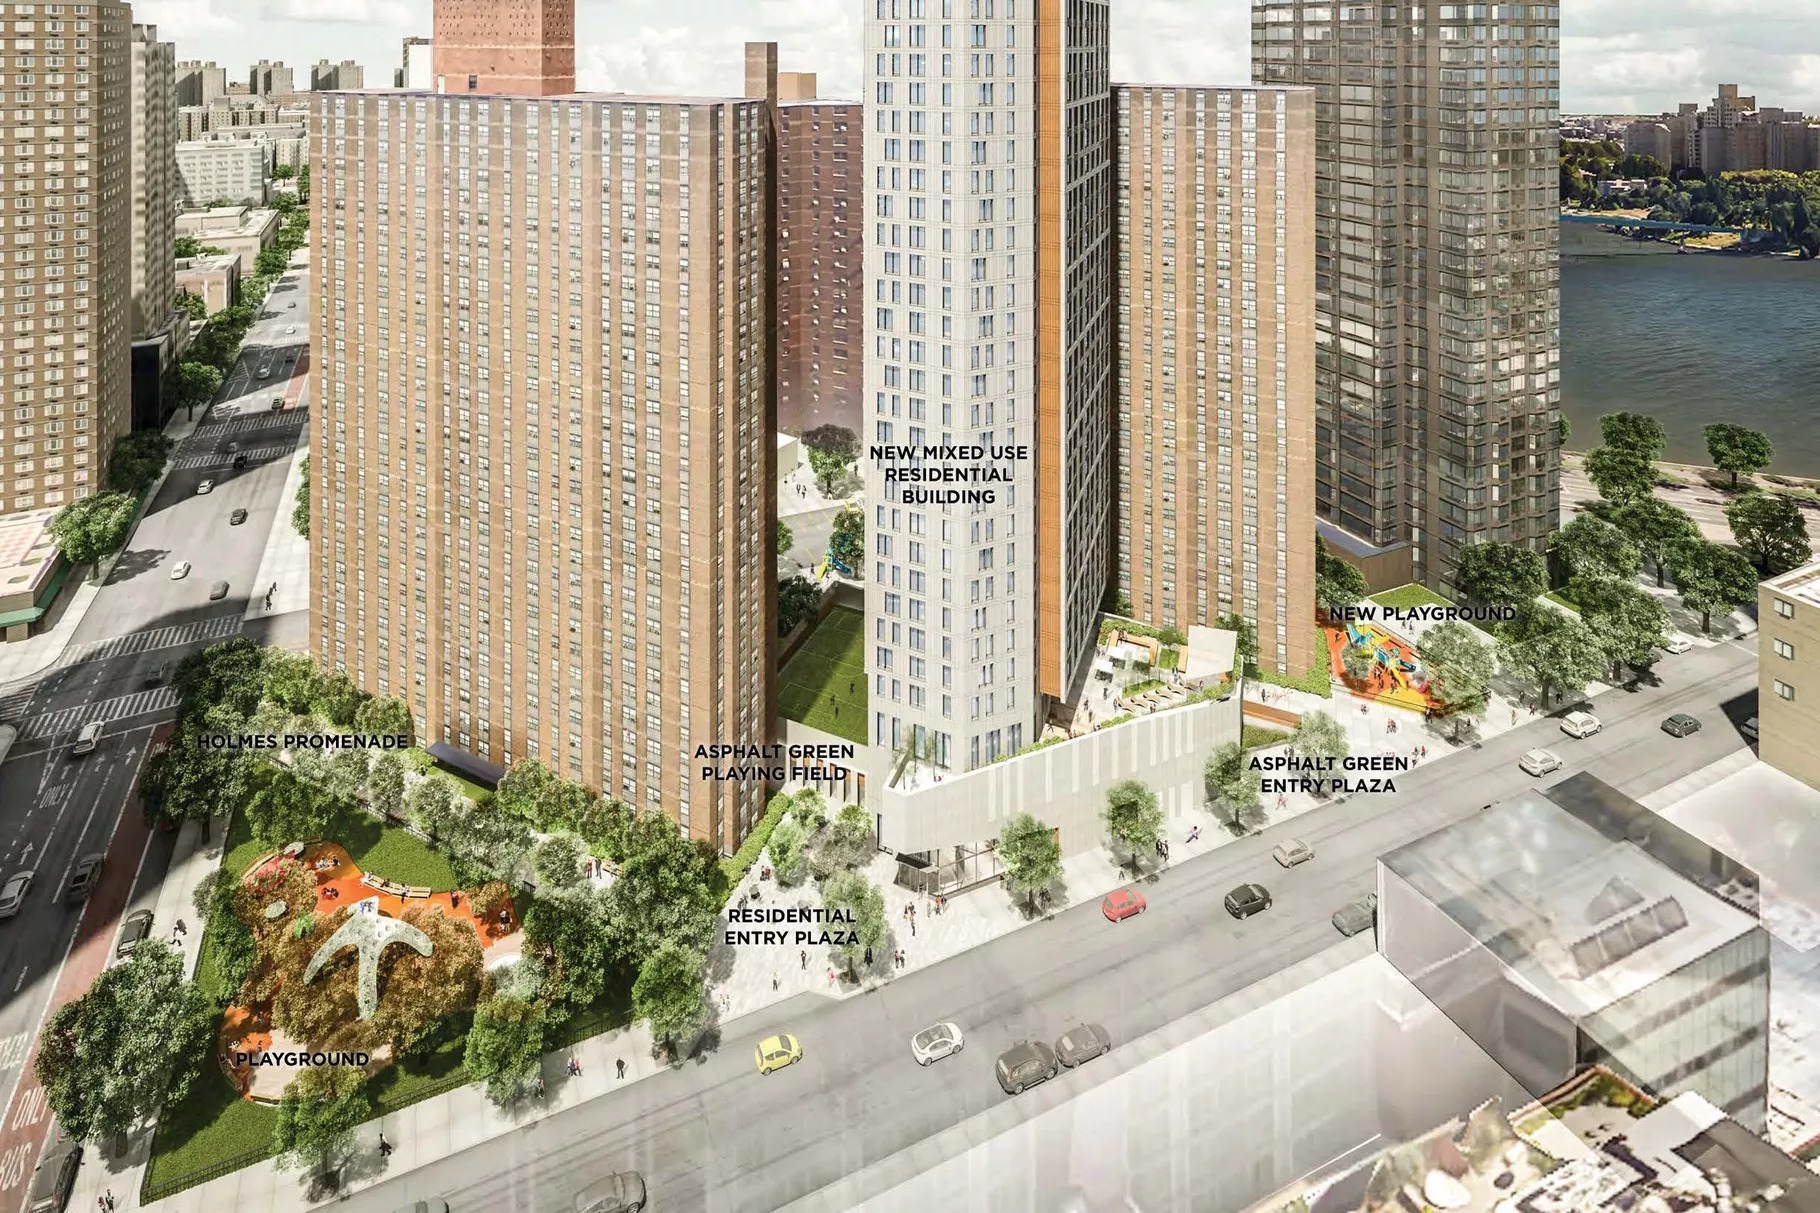 Manhattan BP threatens 'legal remedies' against Upper East Side NYCHA project